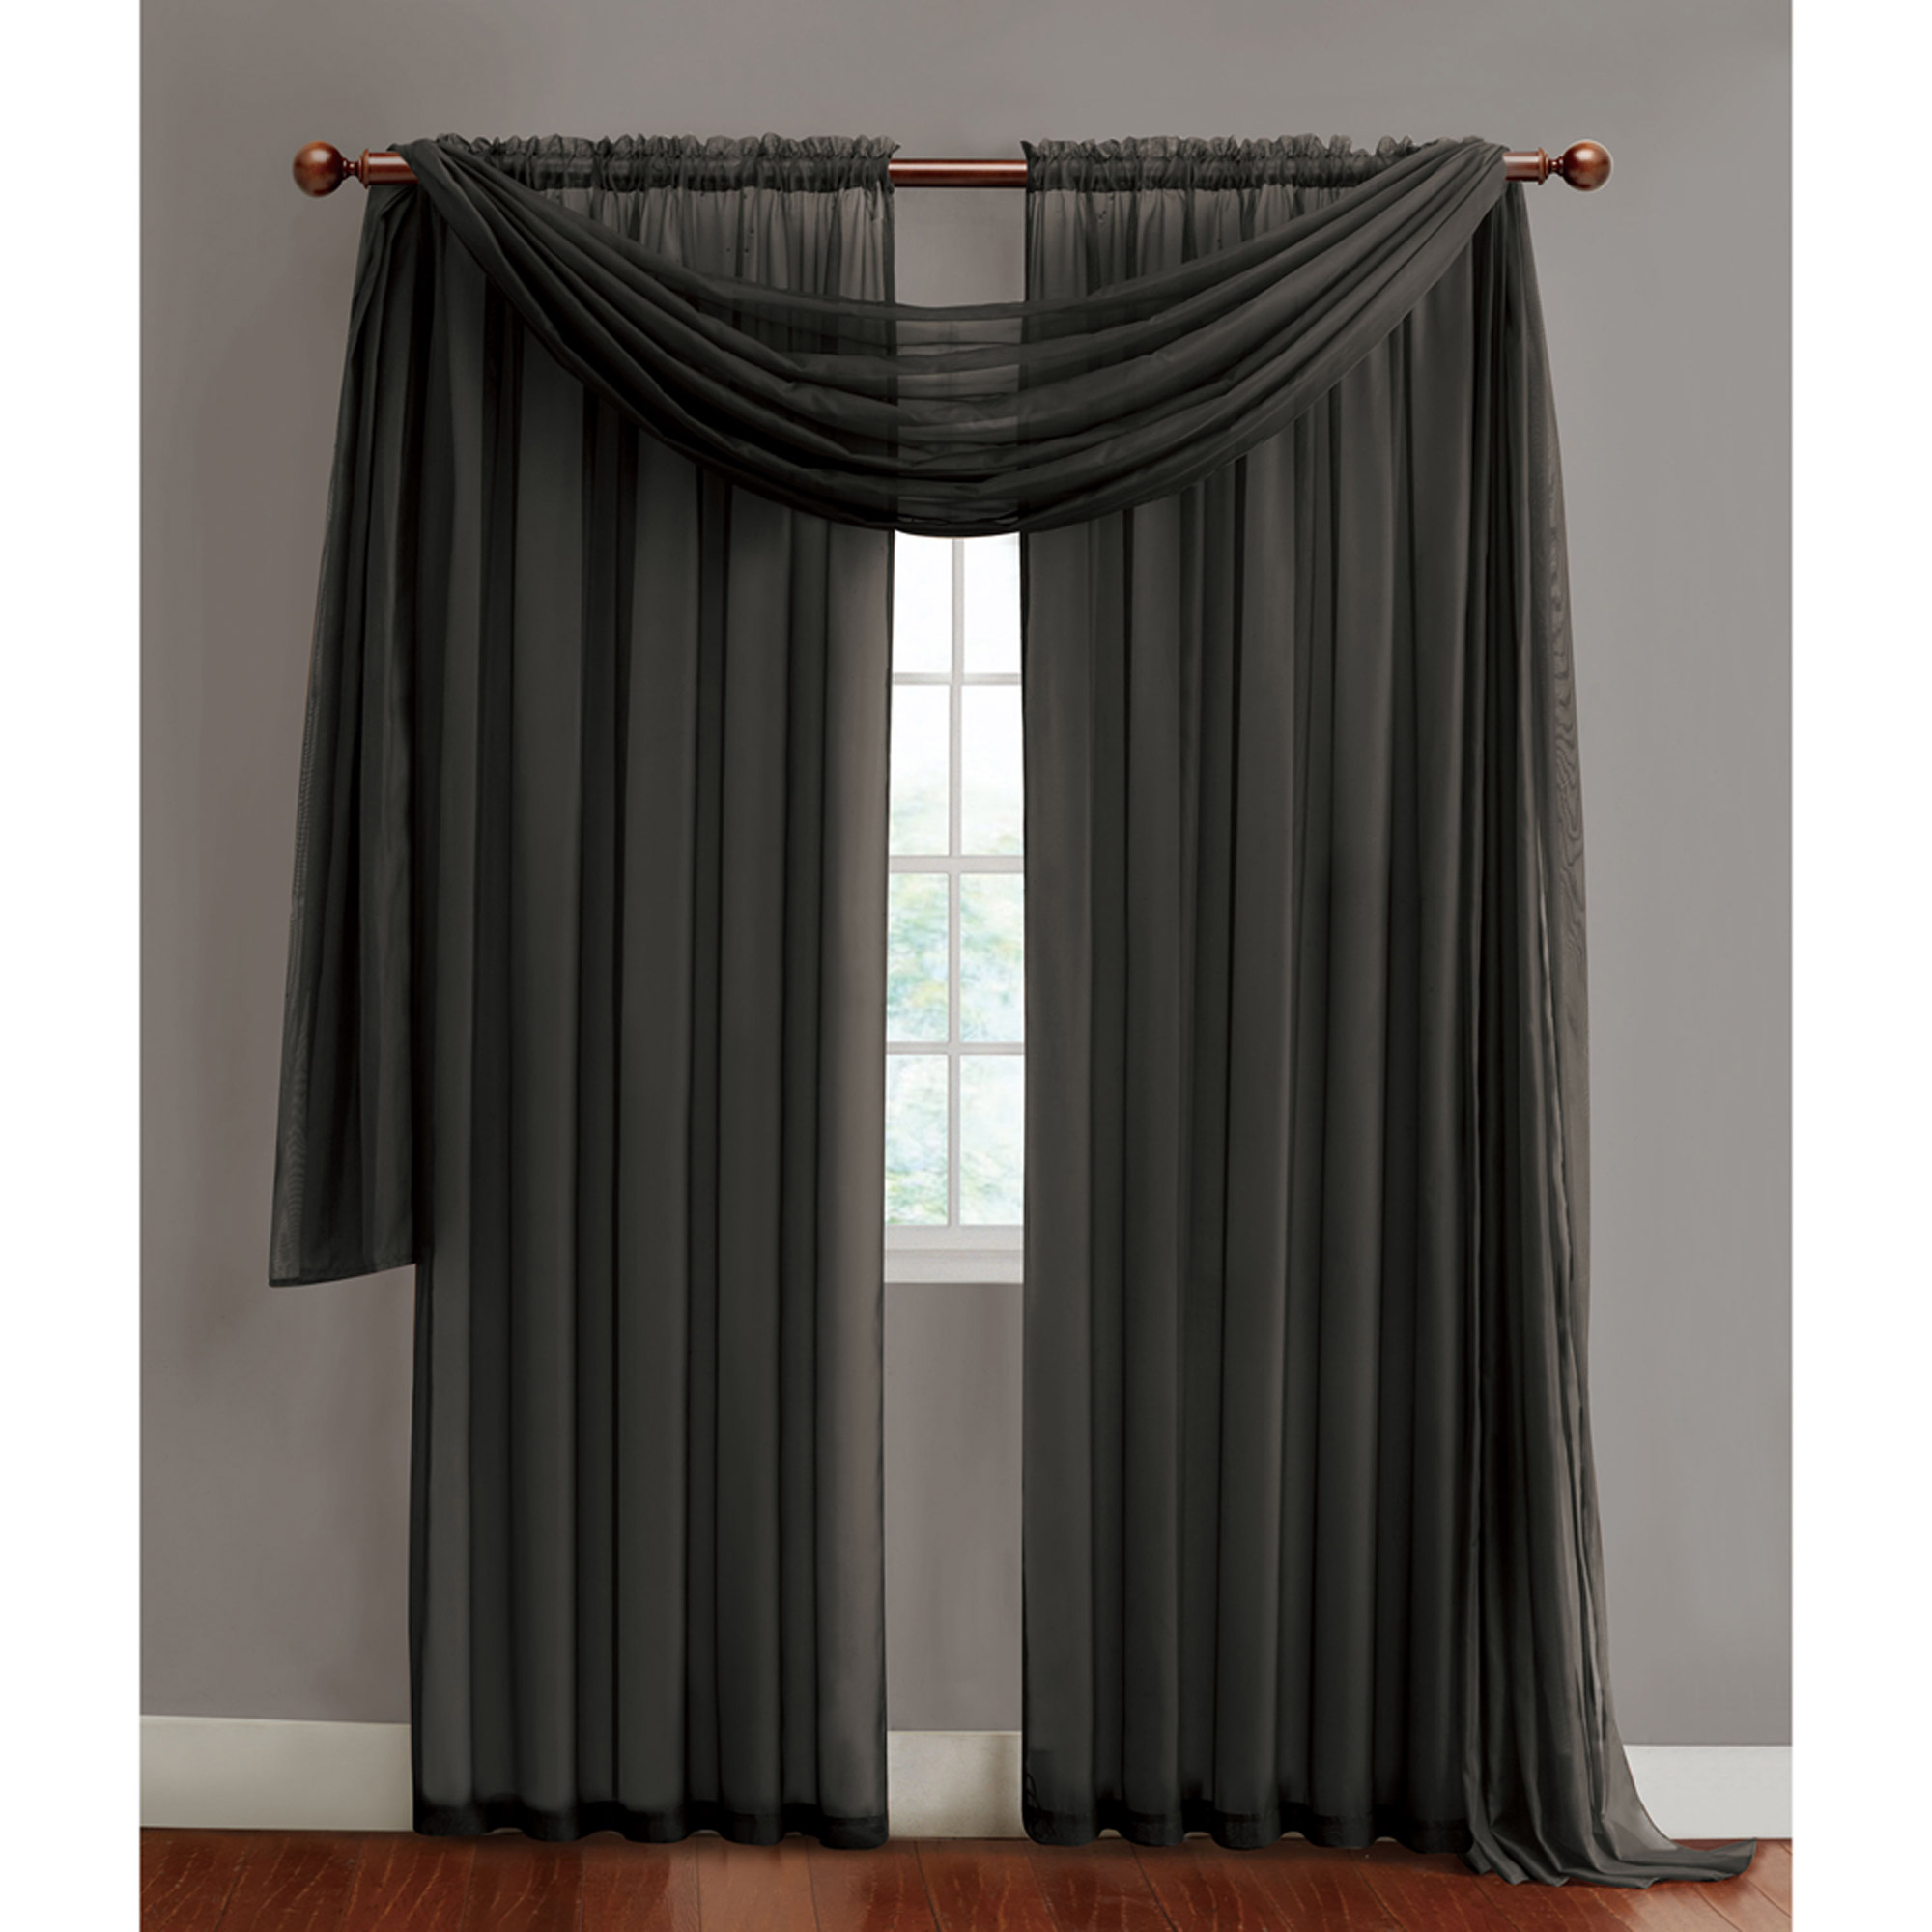 Current Infinity Sheer Rod Pocket Curtain Panels With Vcny Home Infinity Sheer Rod Pocket Window Curtains, Multiple Sizes Available – Walmart (View 6 of 20)